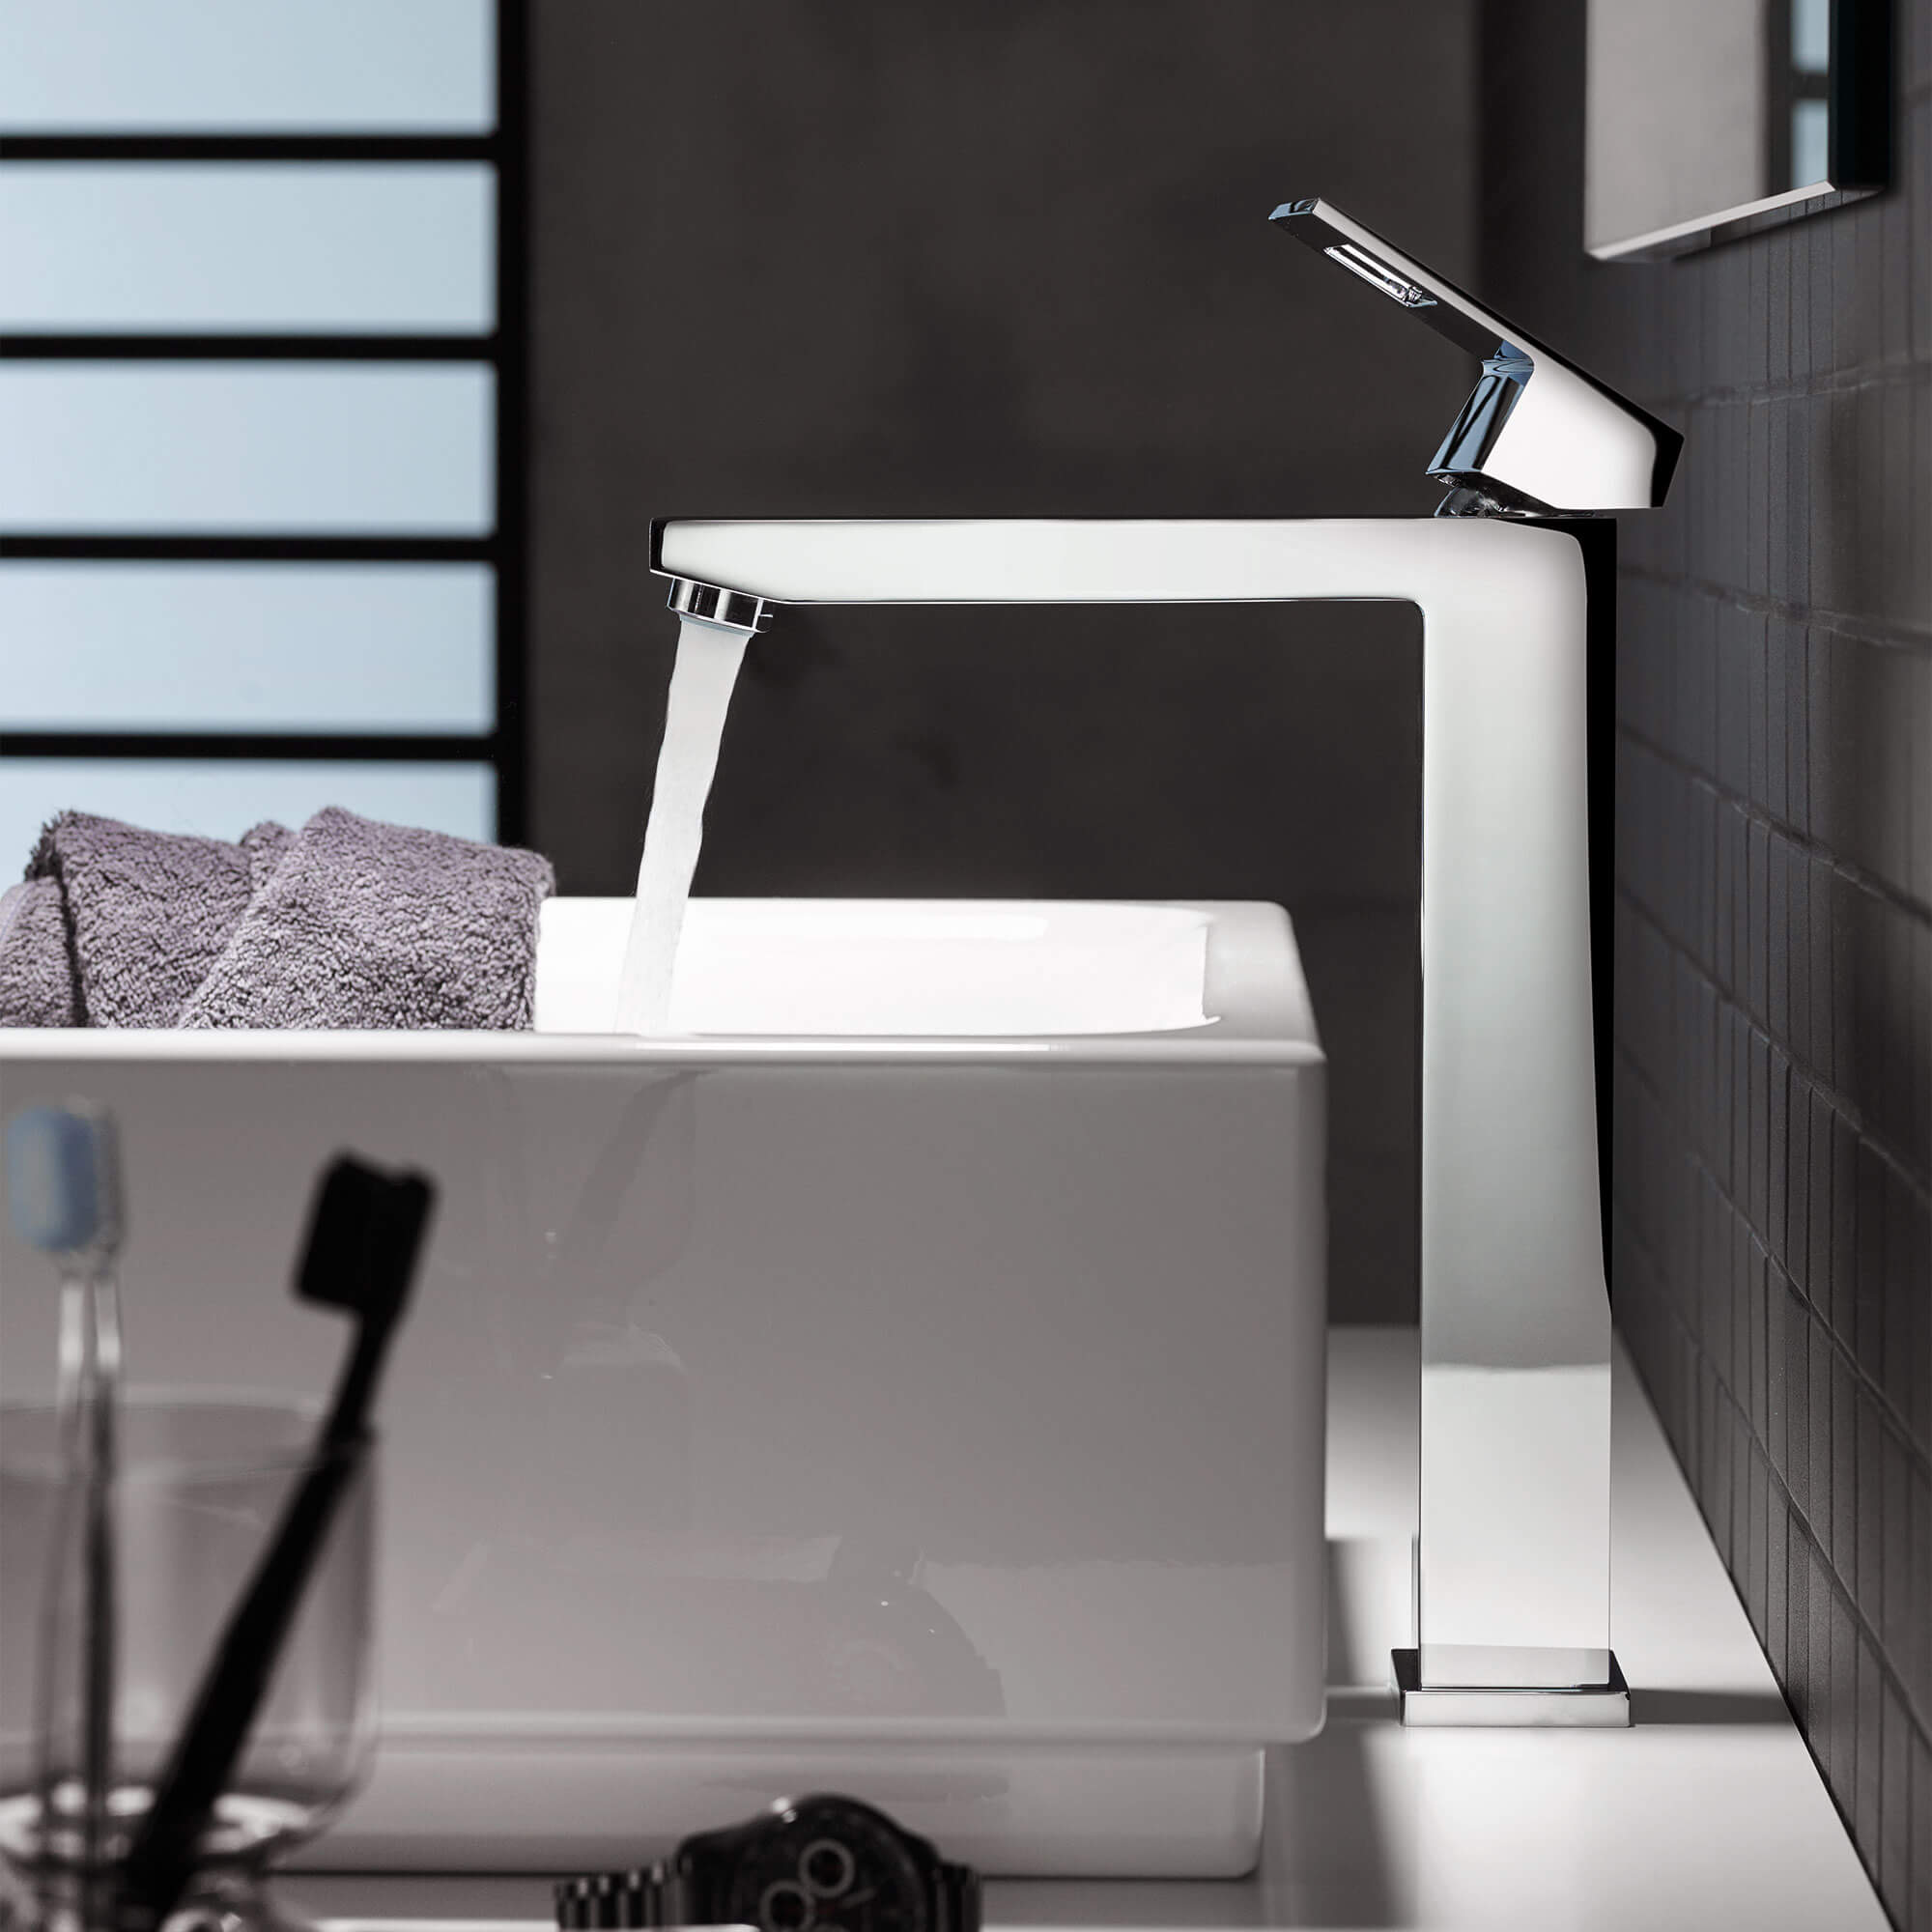 Eurocube faucet spraying water into a white sink.